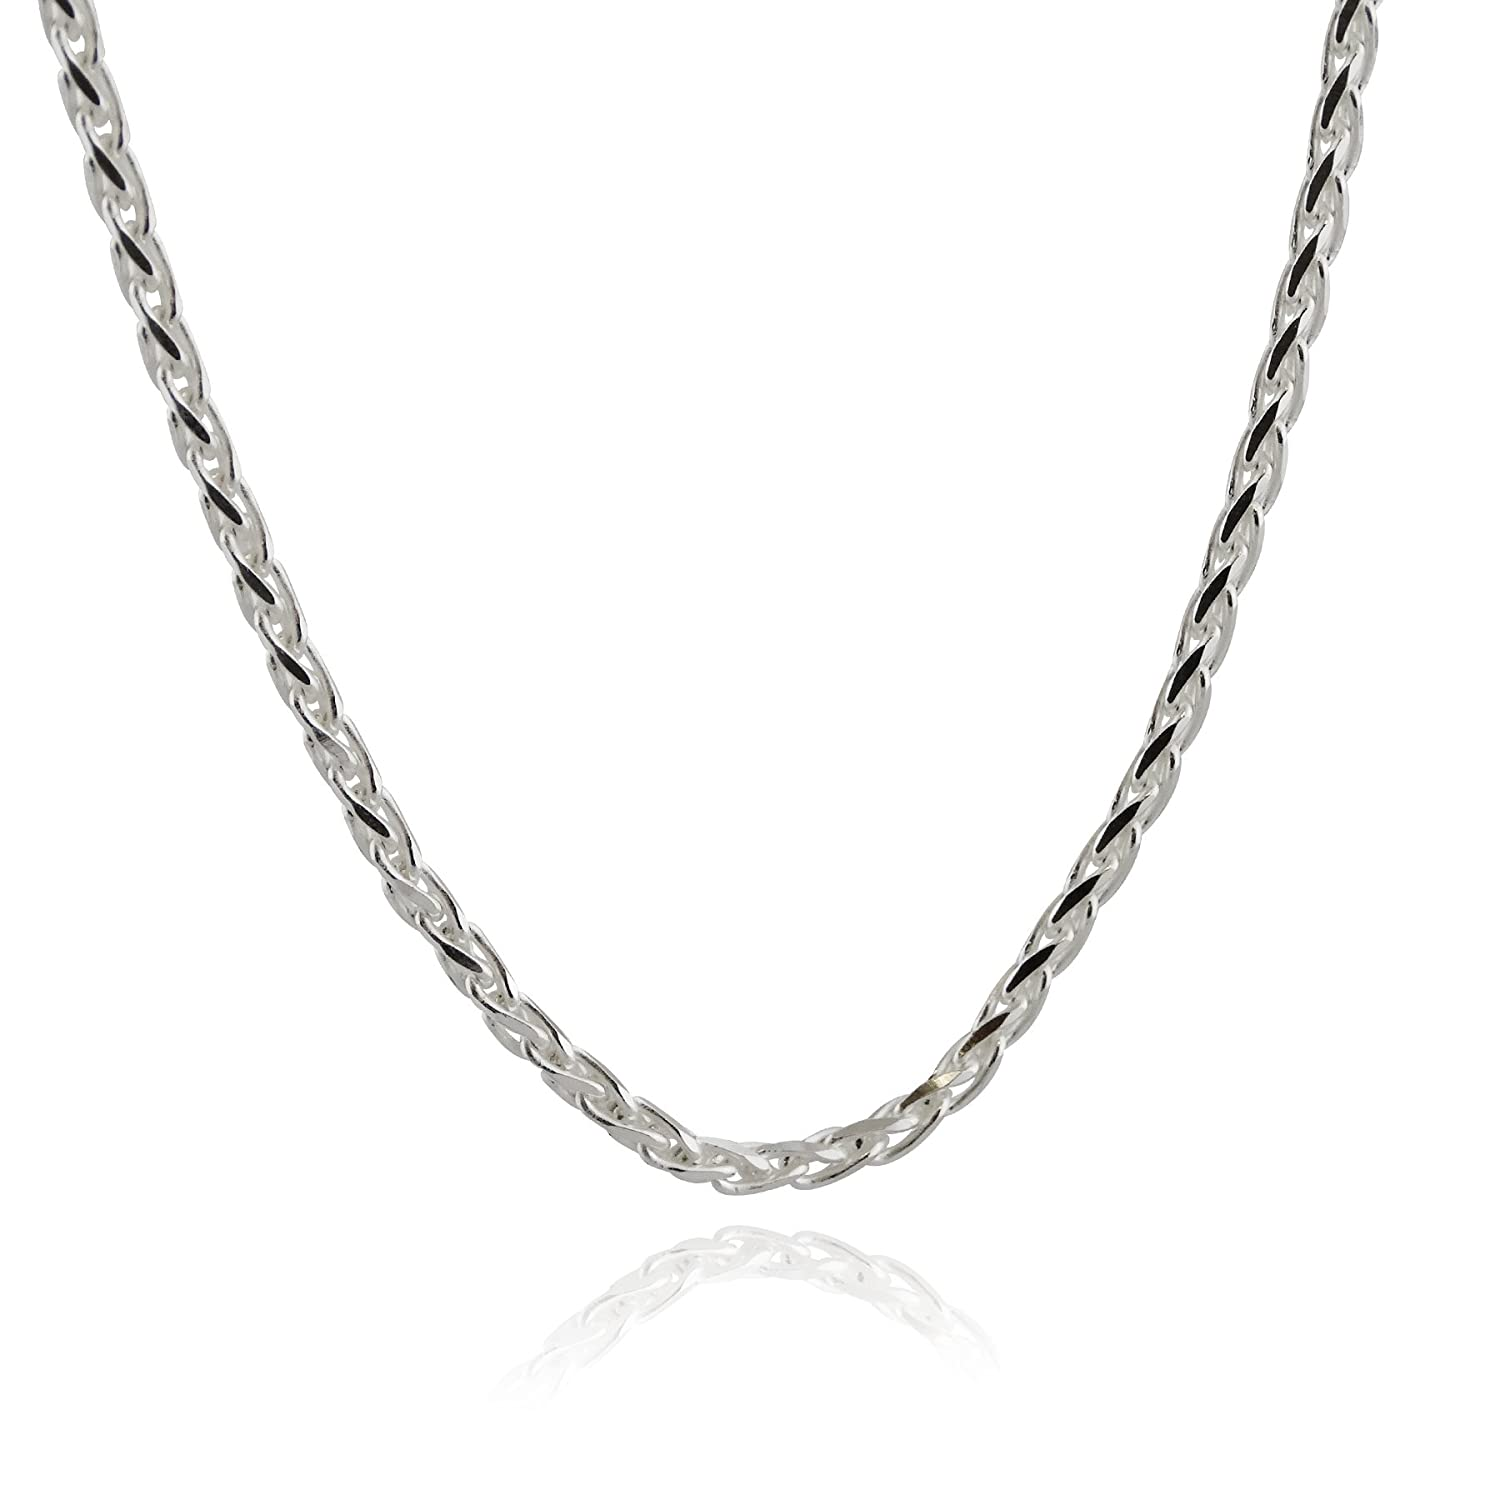 Sterling Silver 3mm Spiga Wheat Chain Necklace - 16, 18, 20, 24, 30 Inches